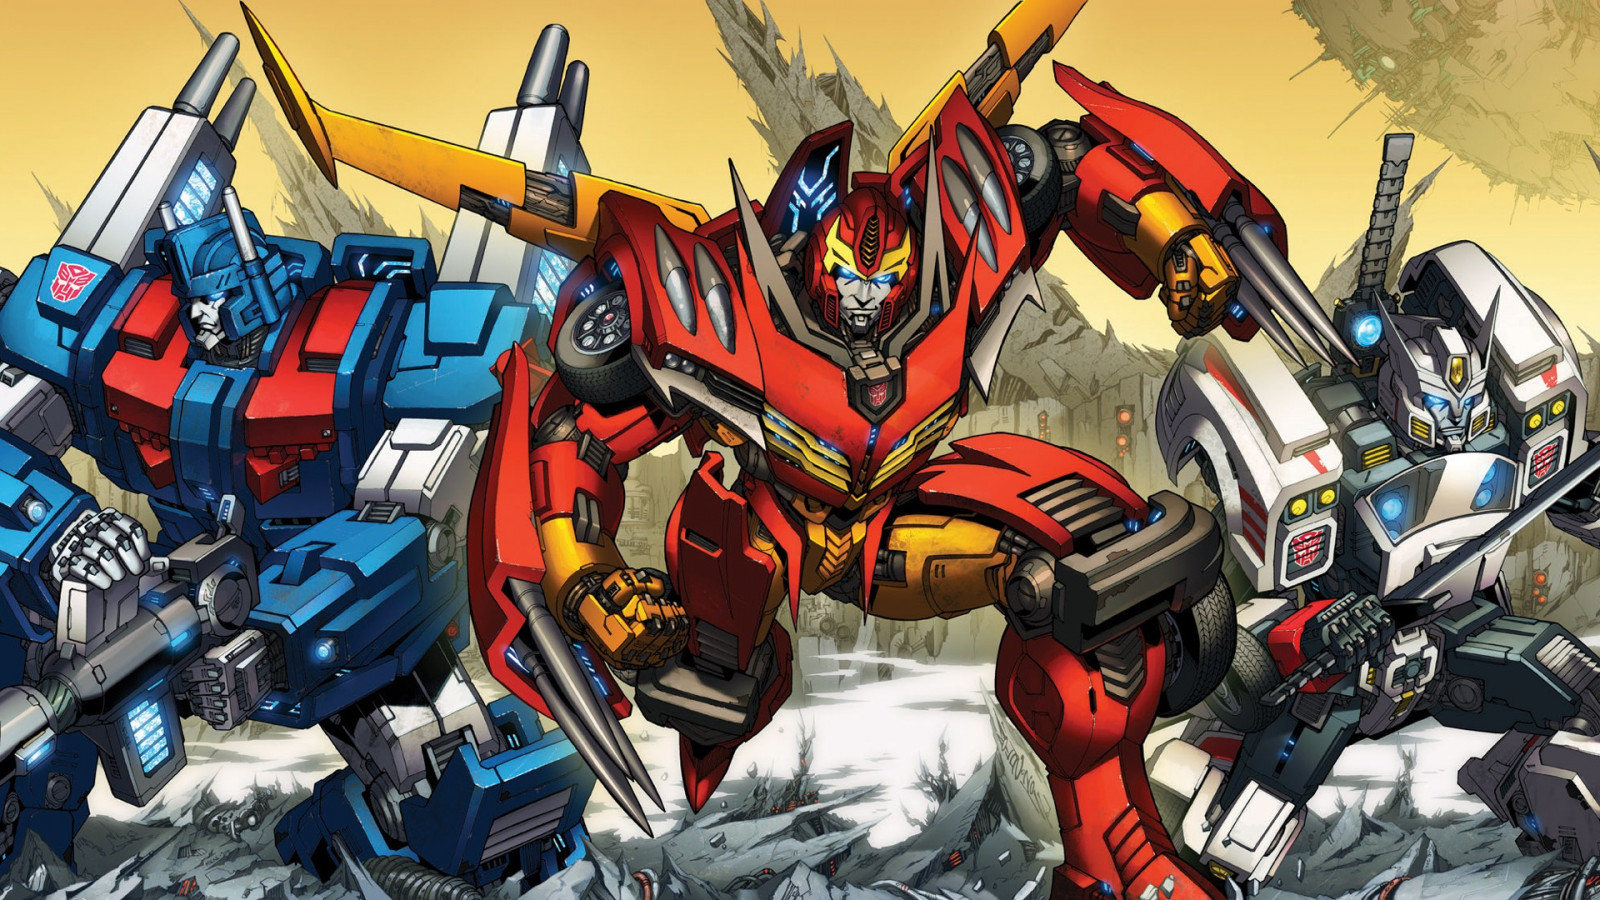 Fall Of Cybertron Wallpaper Wallpaper Anime Artwork Transformers Machine Comics